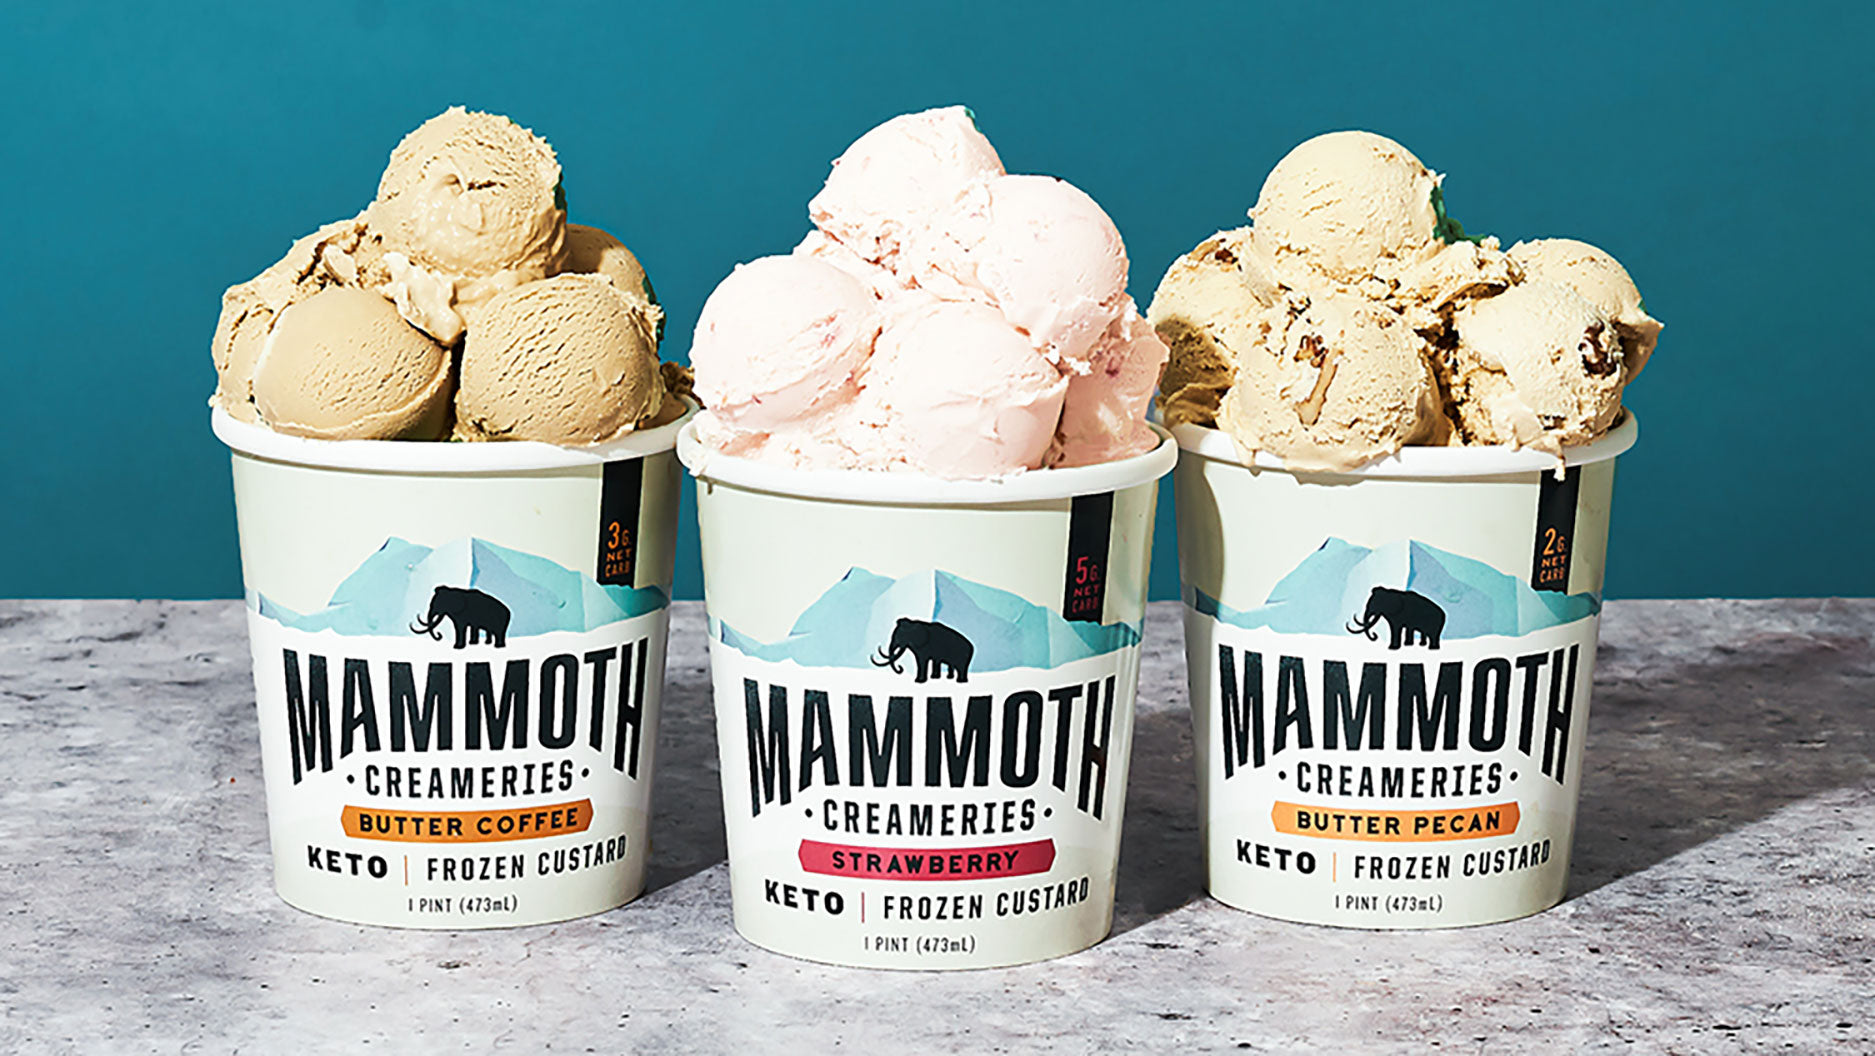 Mammoth Creameries keto ice cream new flavors